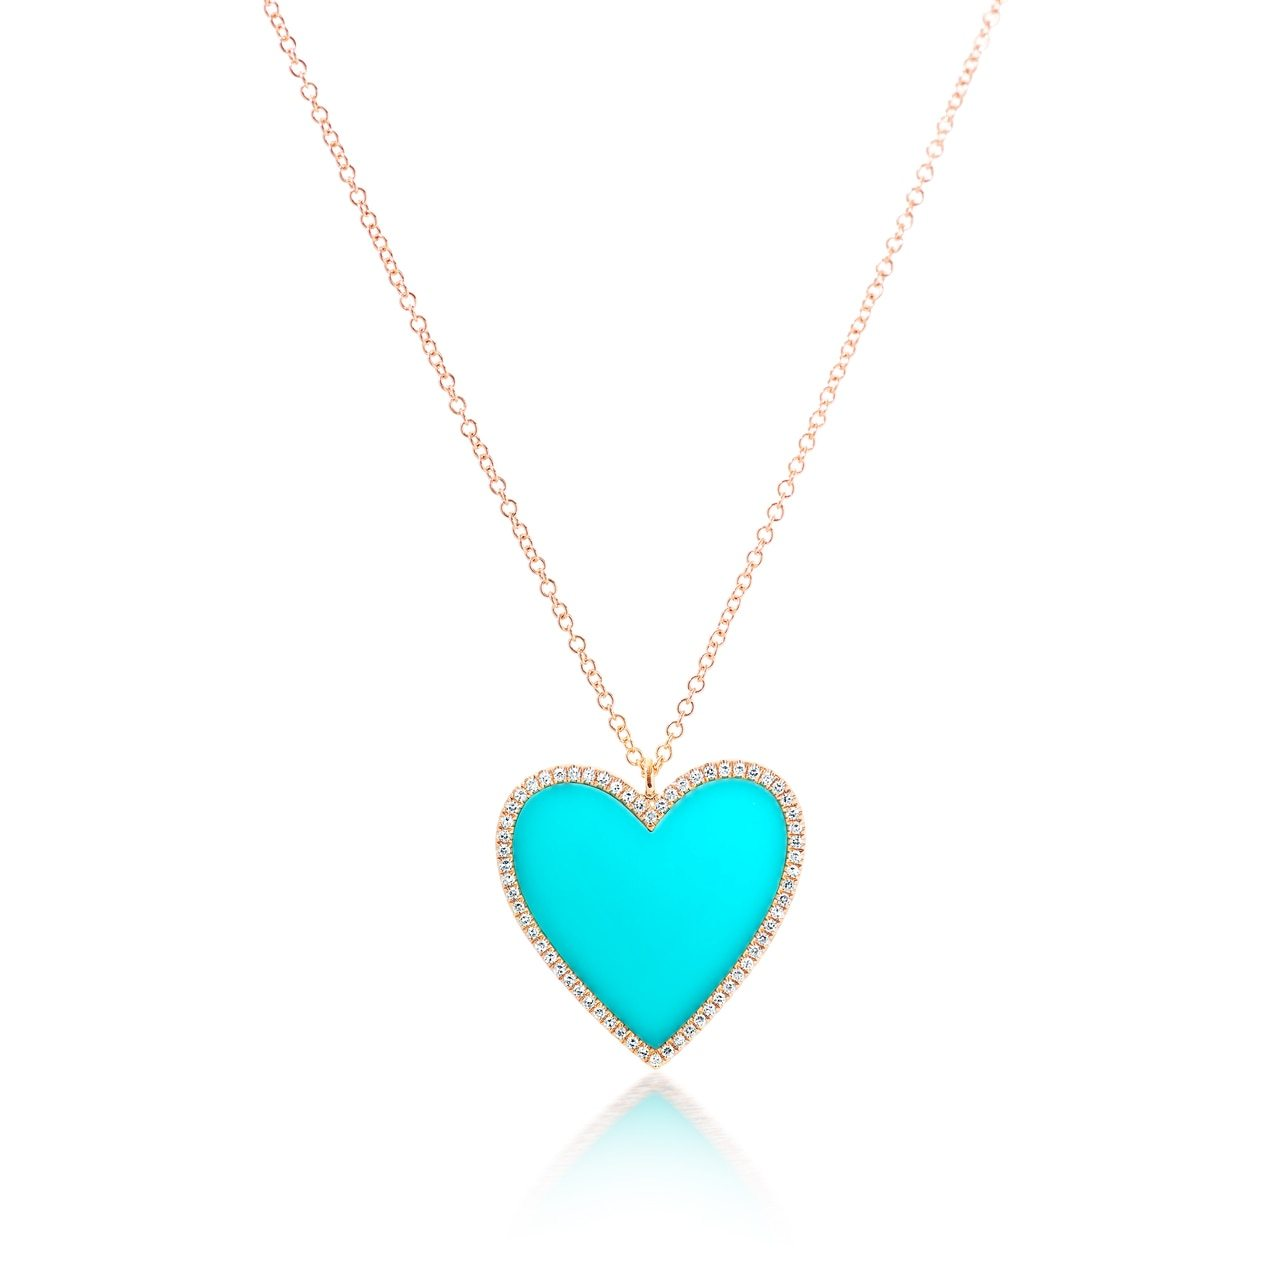 Turquoise and Diamond Heart Pendant